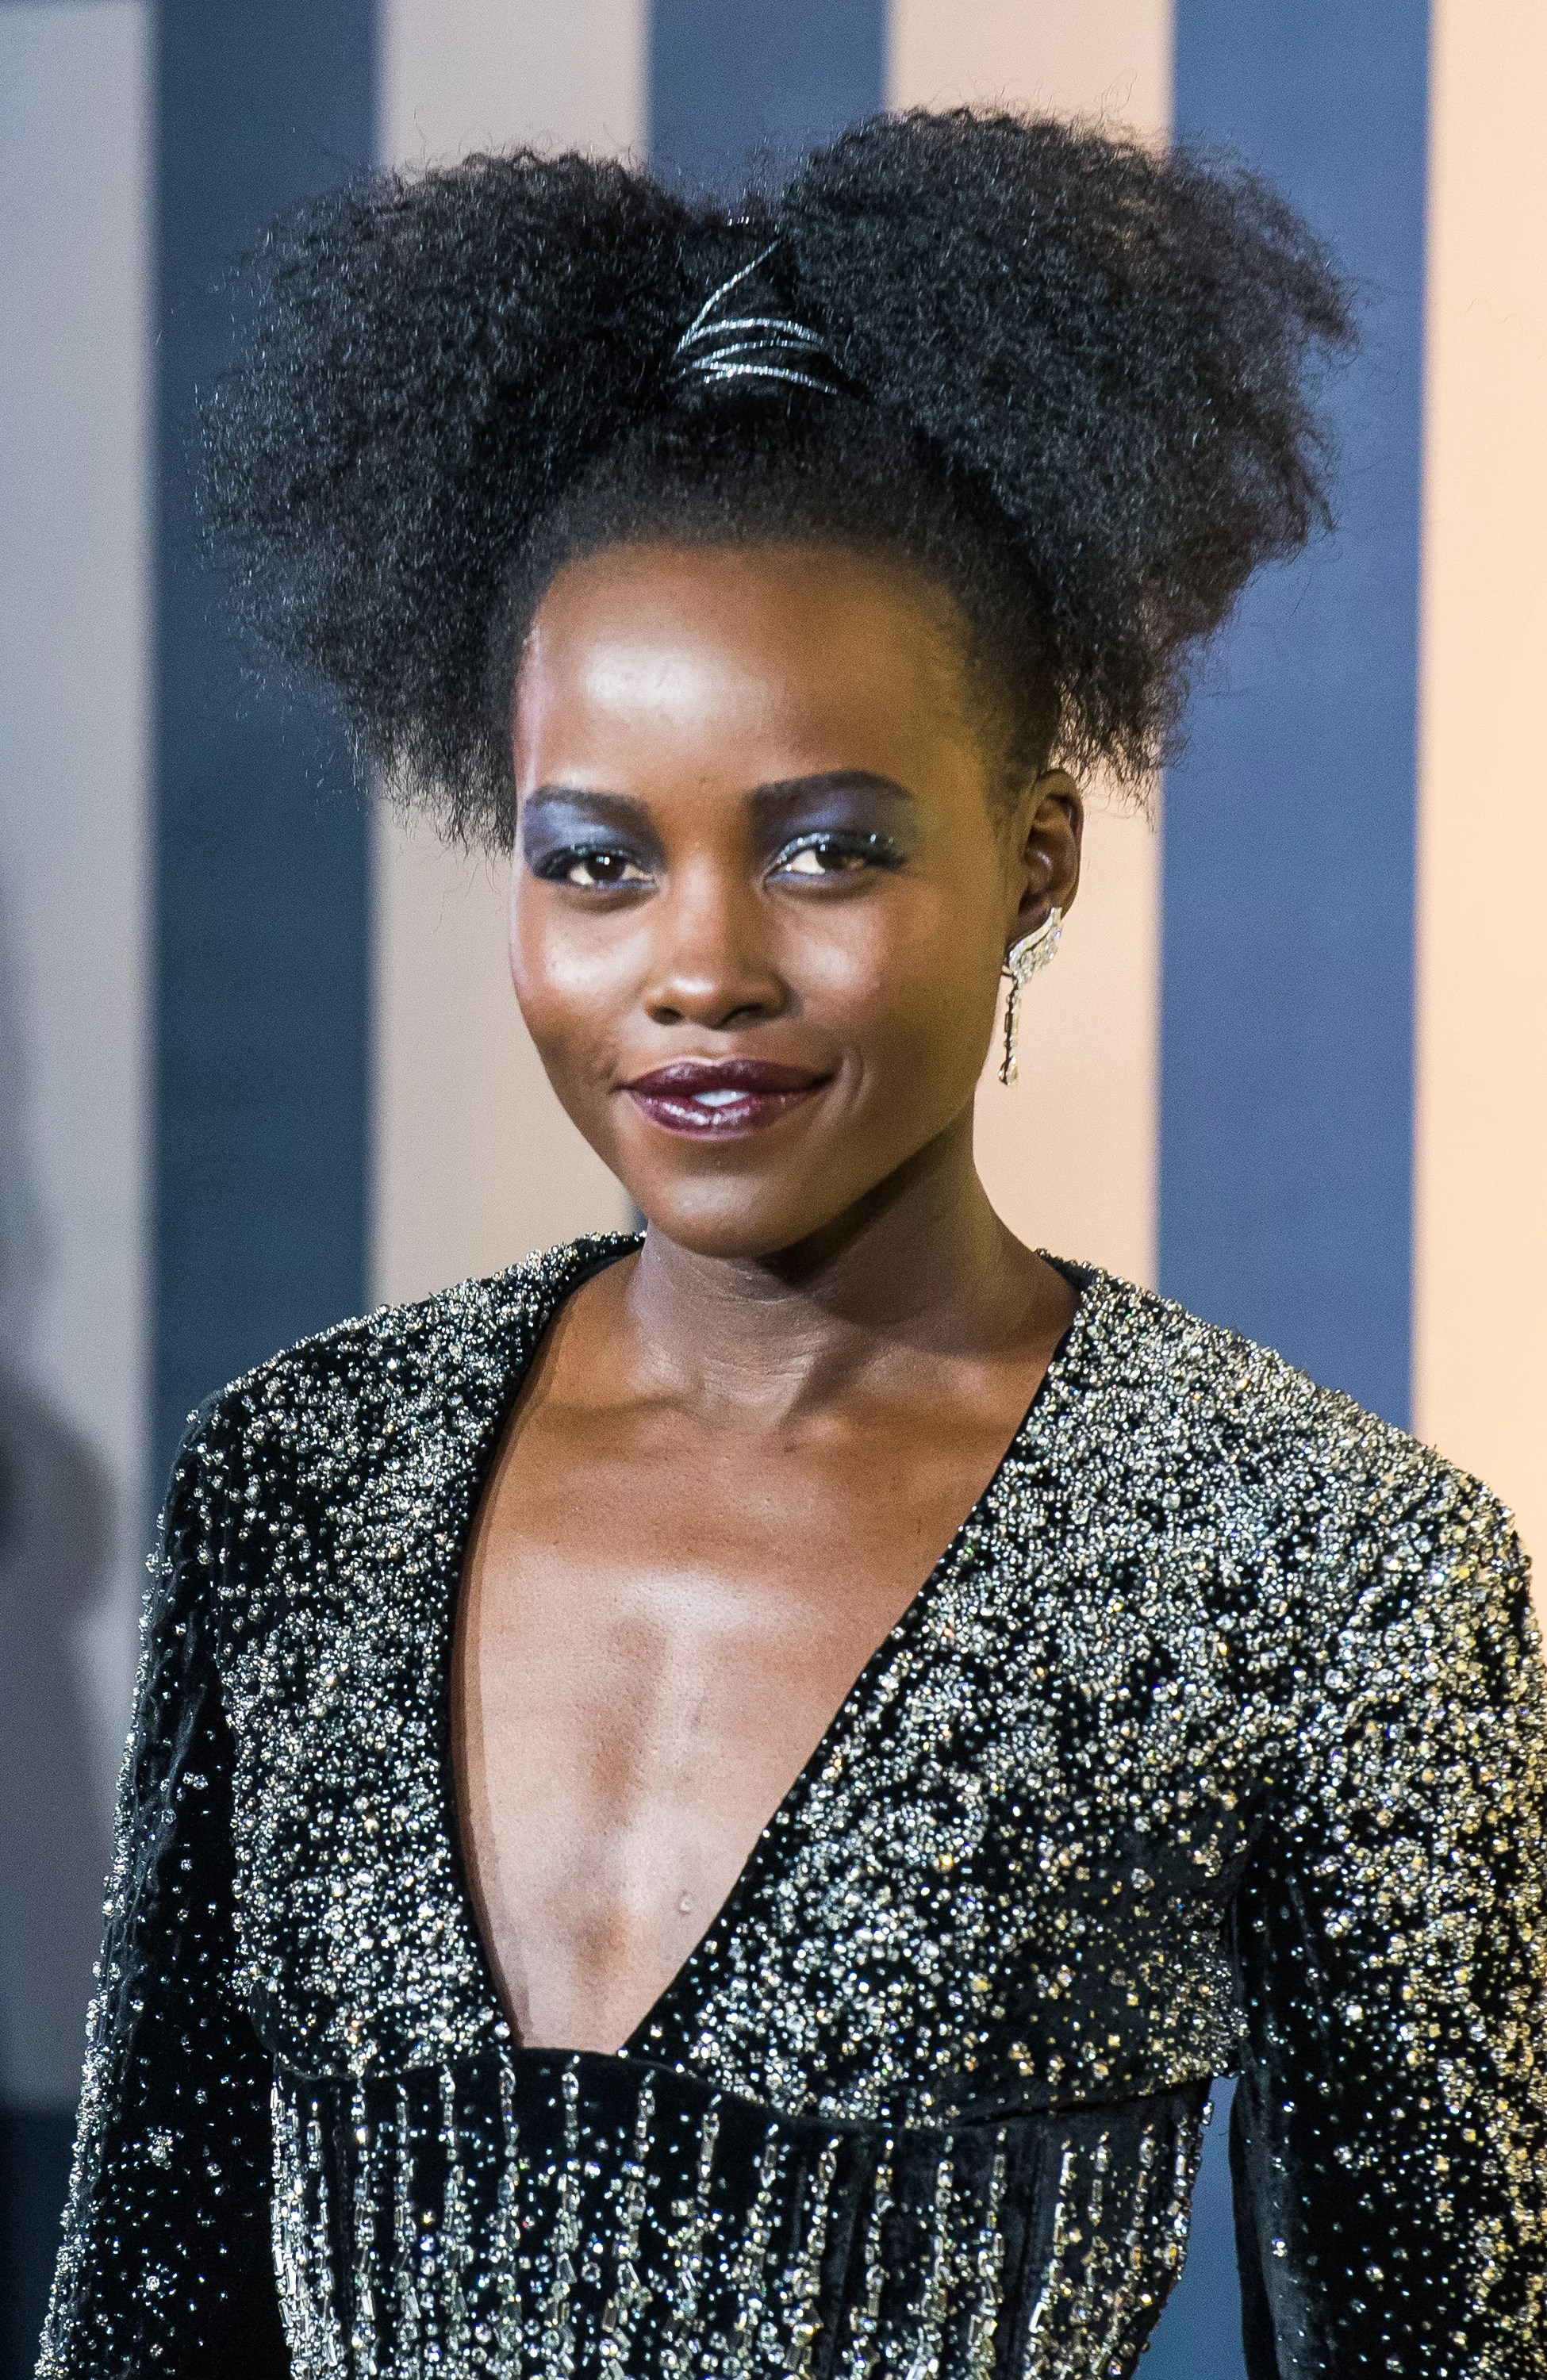 Lupita Nyongo Black Panther Interview February 2018